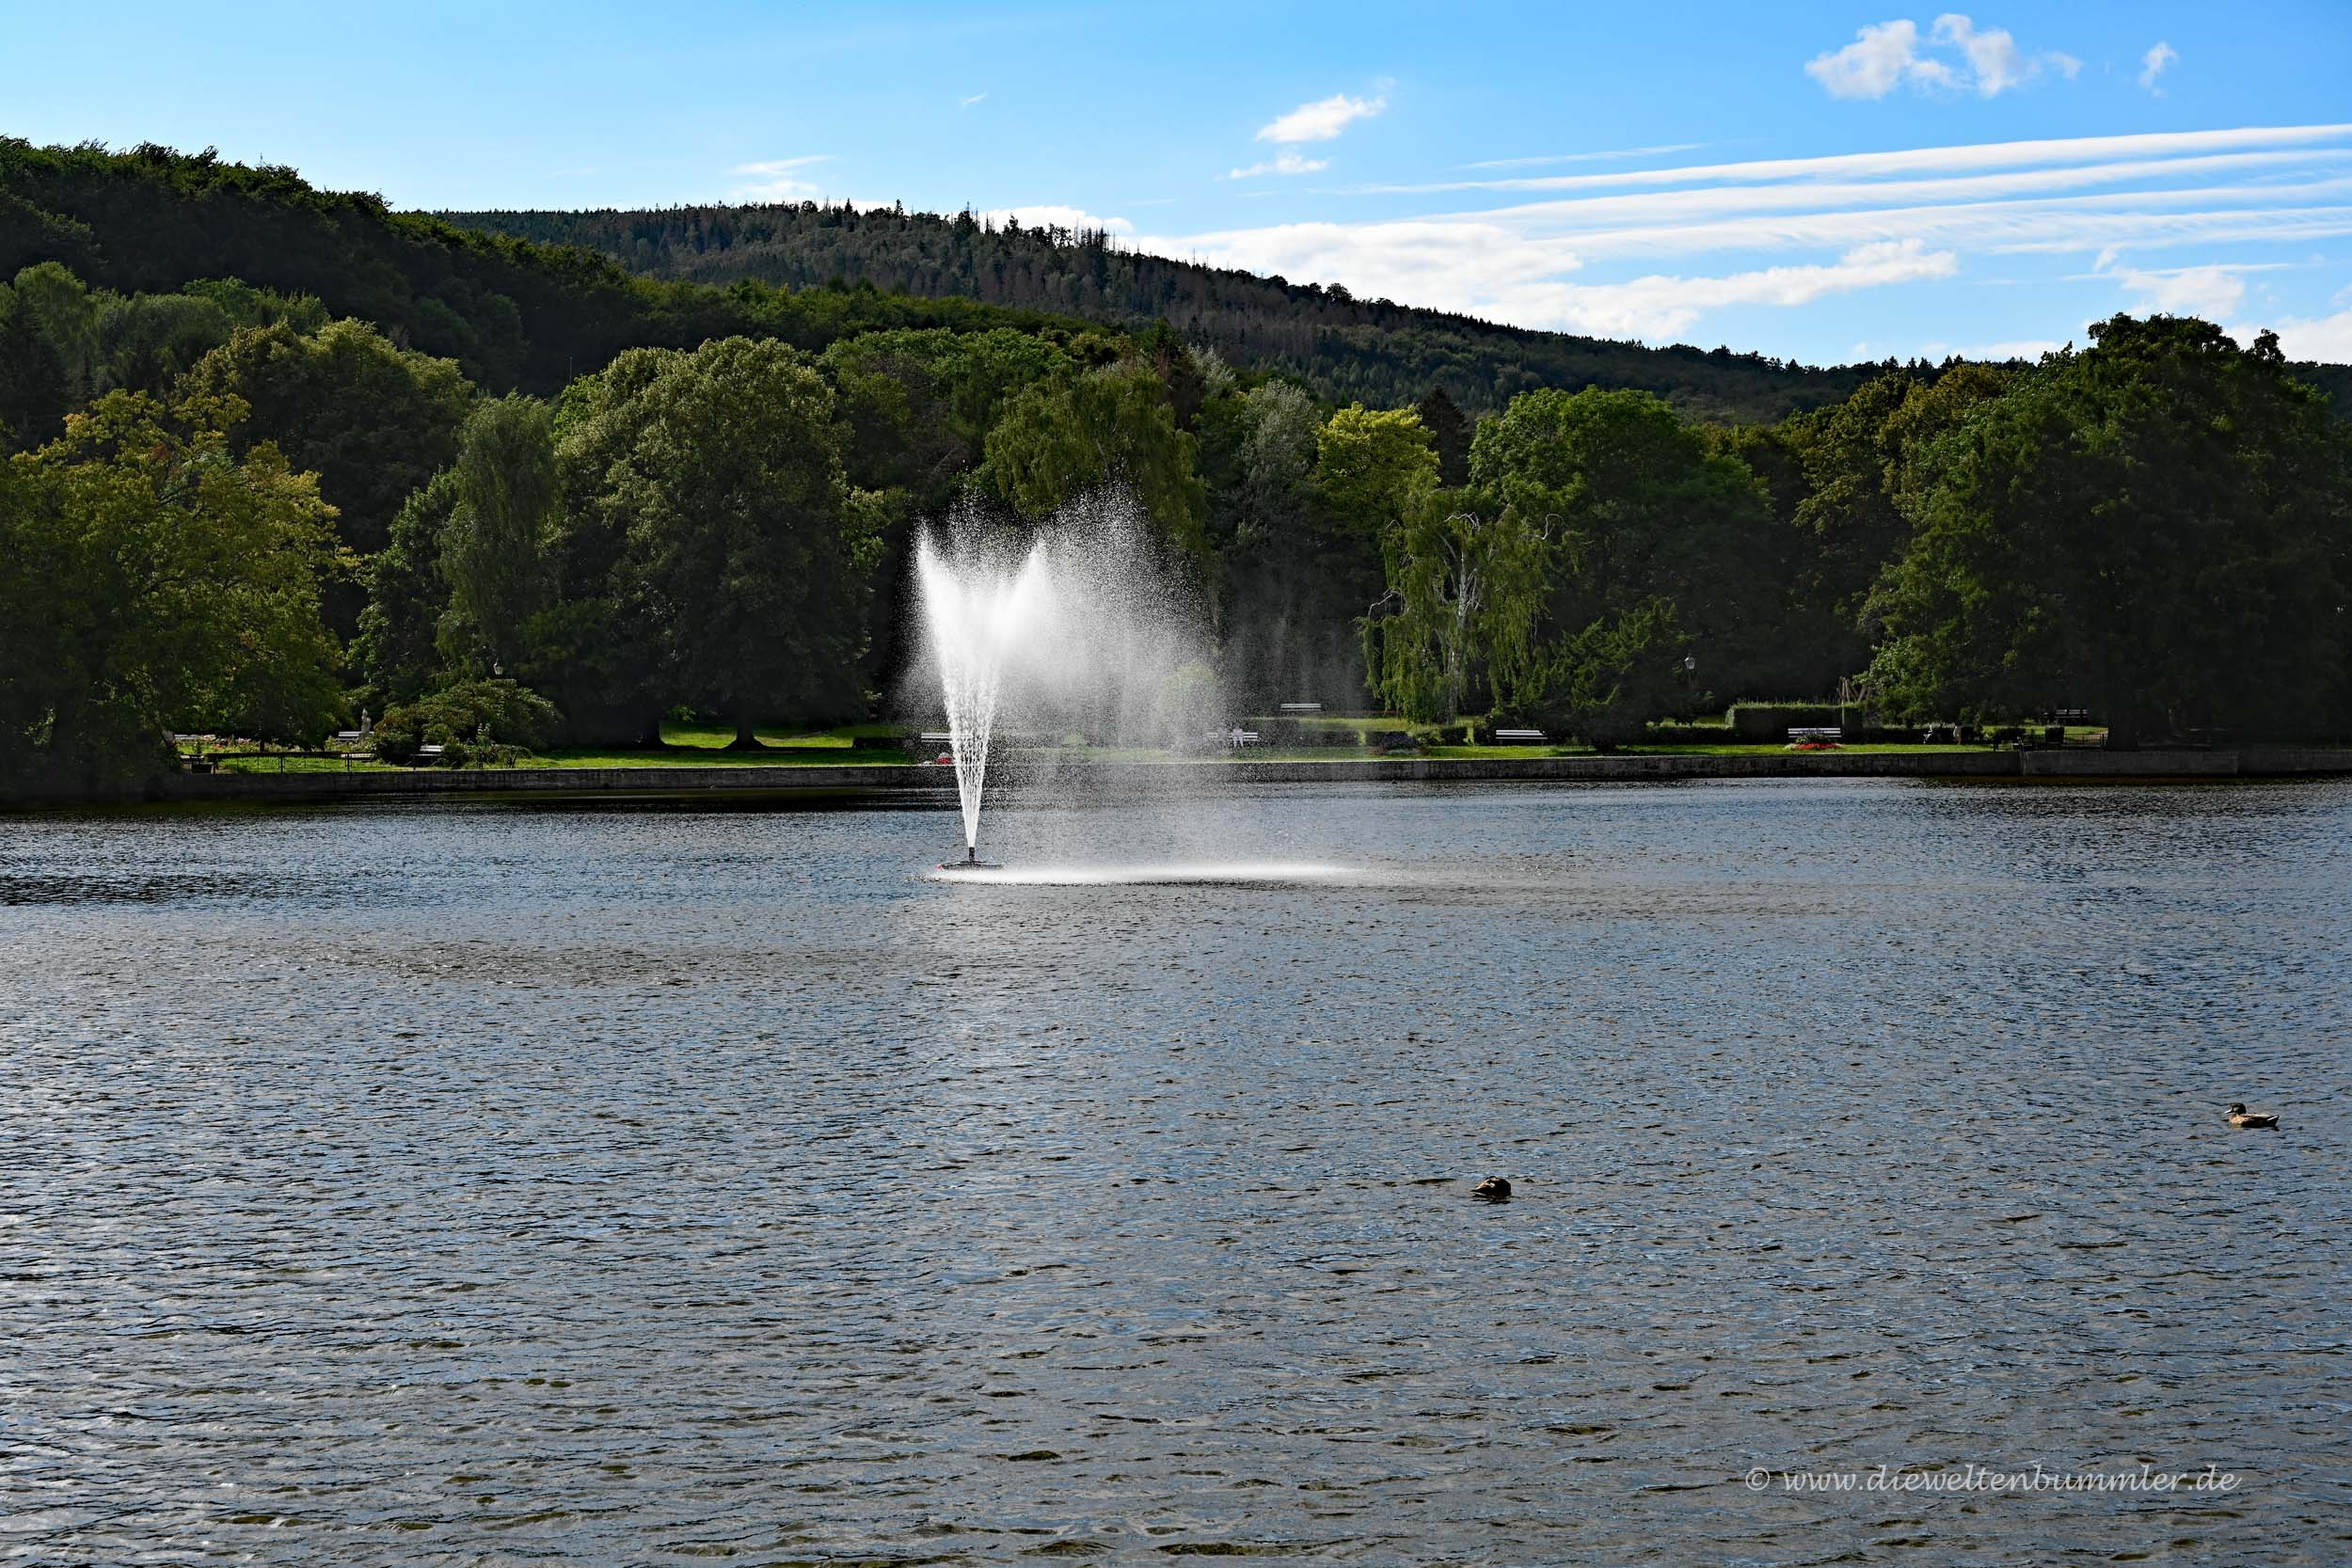 Teich mit Brunnen in Ilsenburg